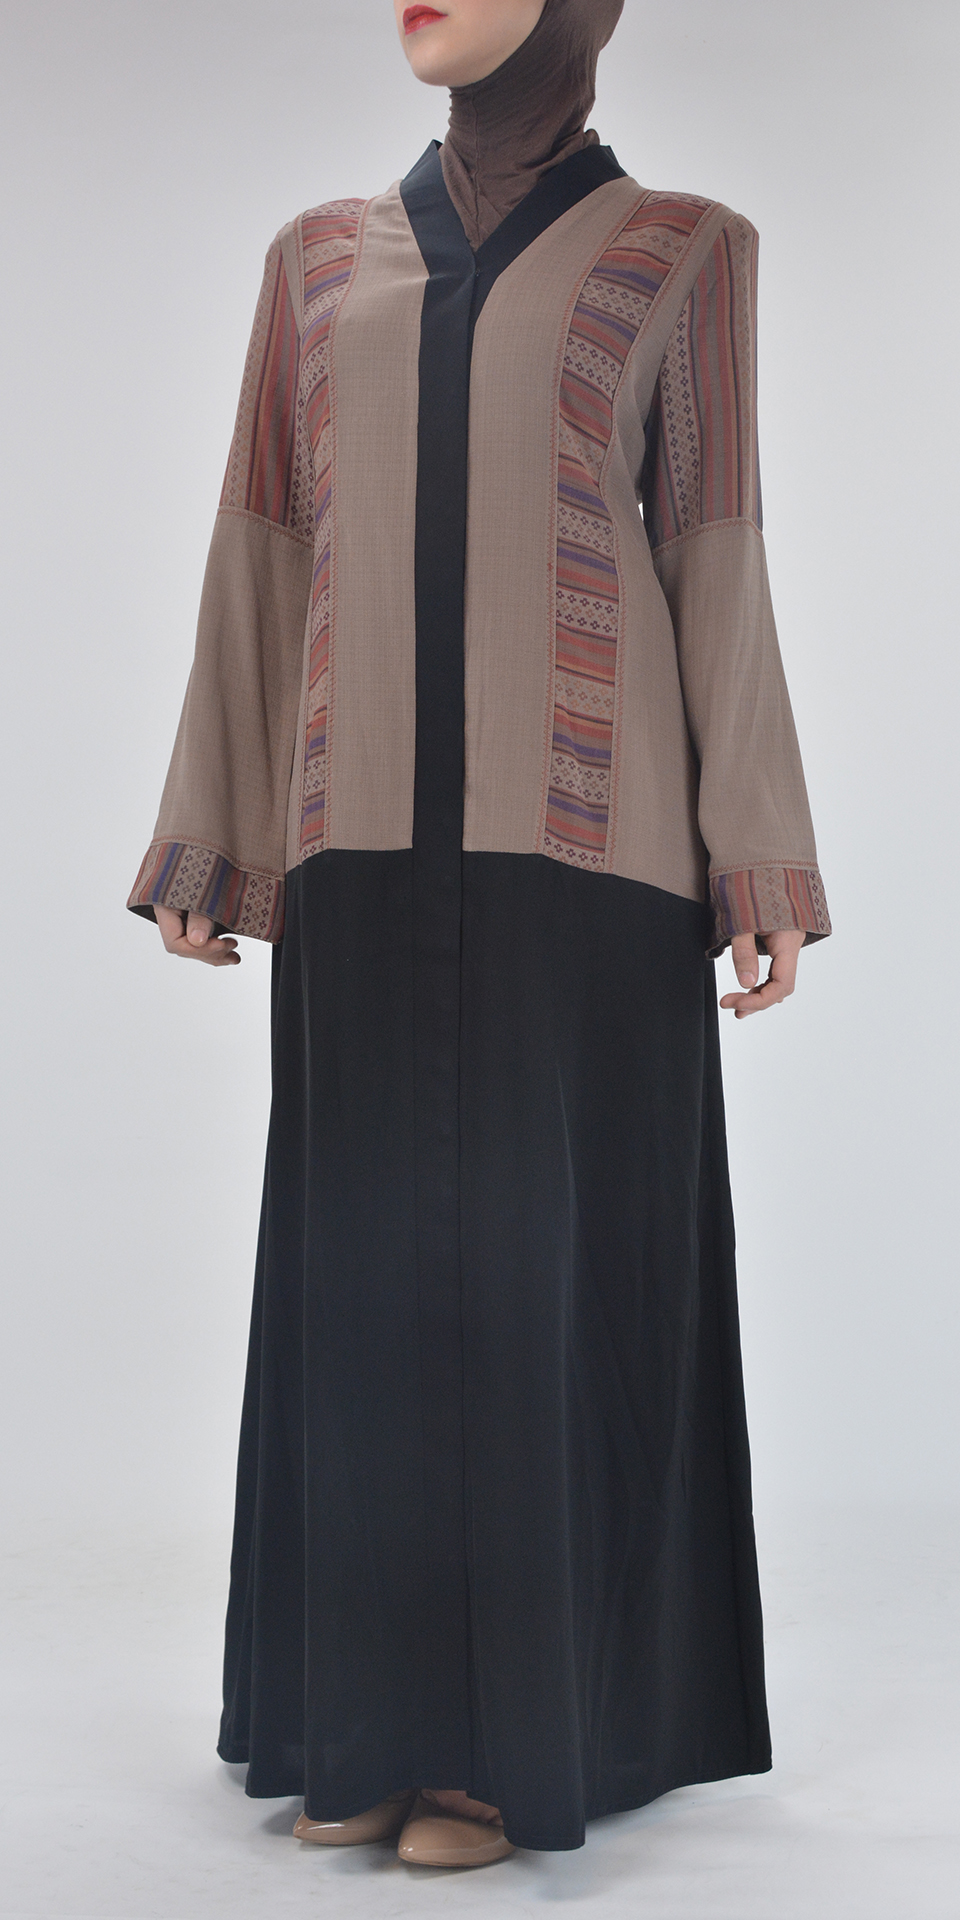 Aztec Flare Abaya - Full Length Zipper ab692 (2)